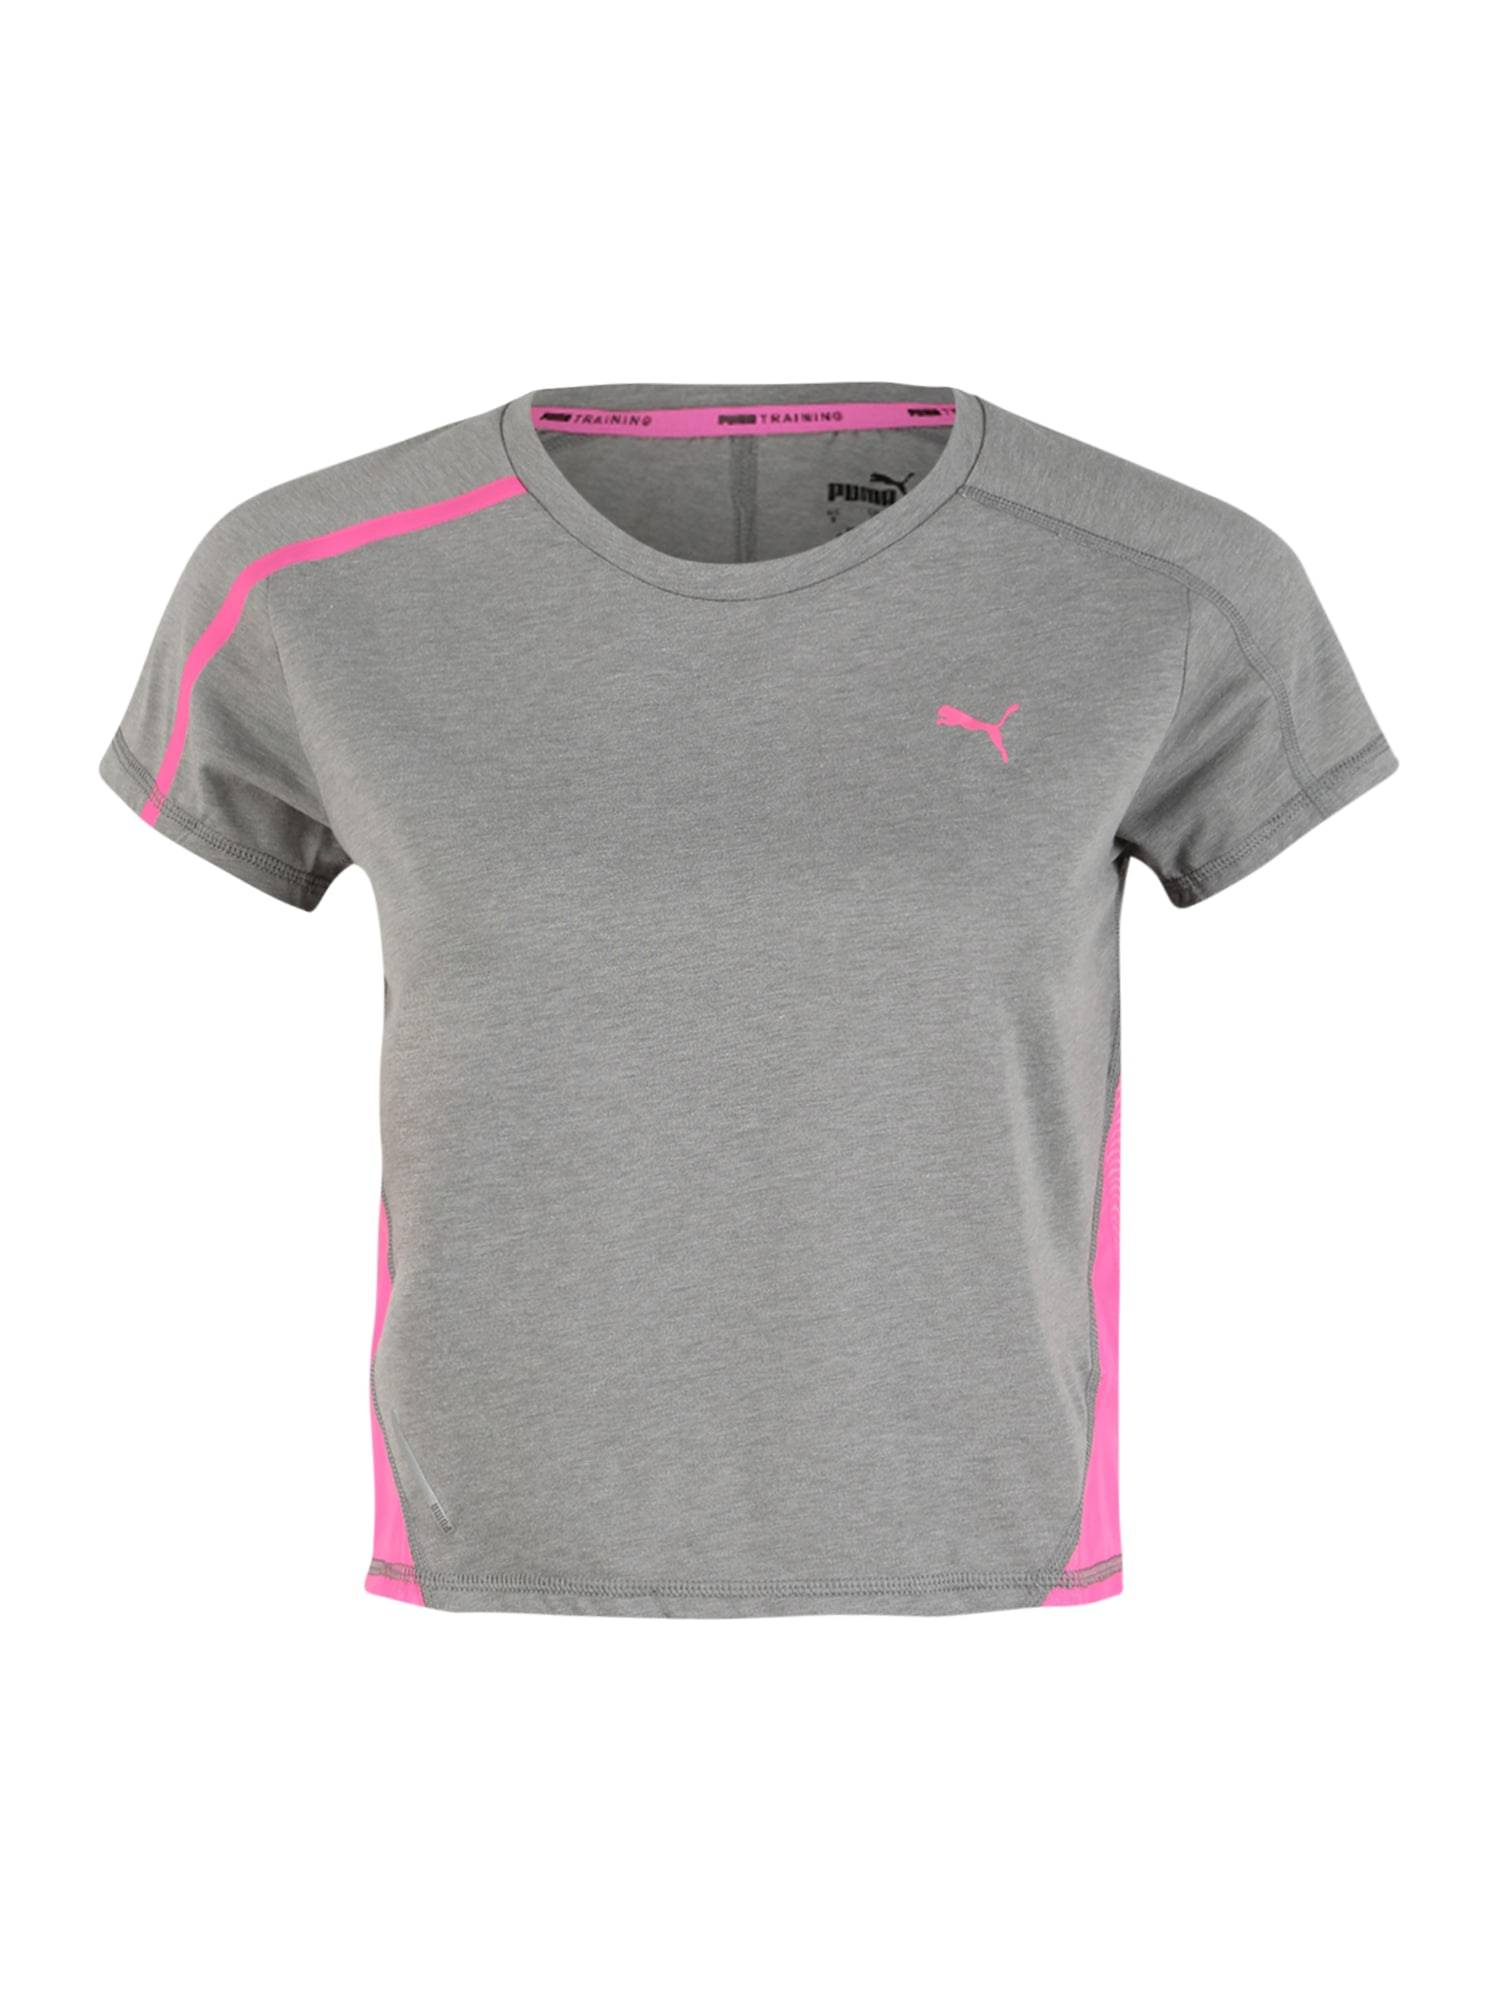 PUMA T-shirt fonctionnel 'Train Panel'  - Gris - Taille: XL - female